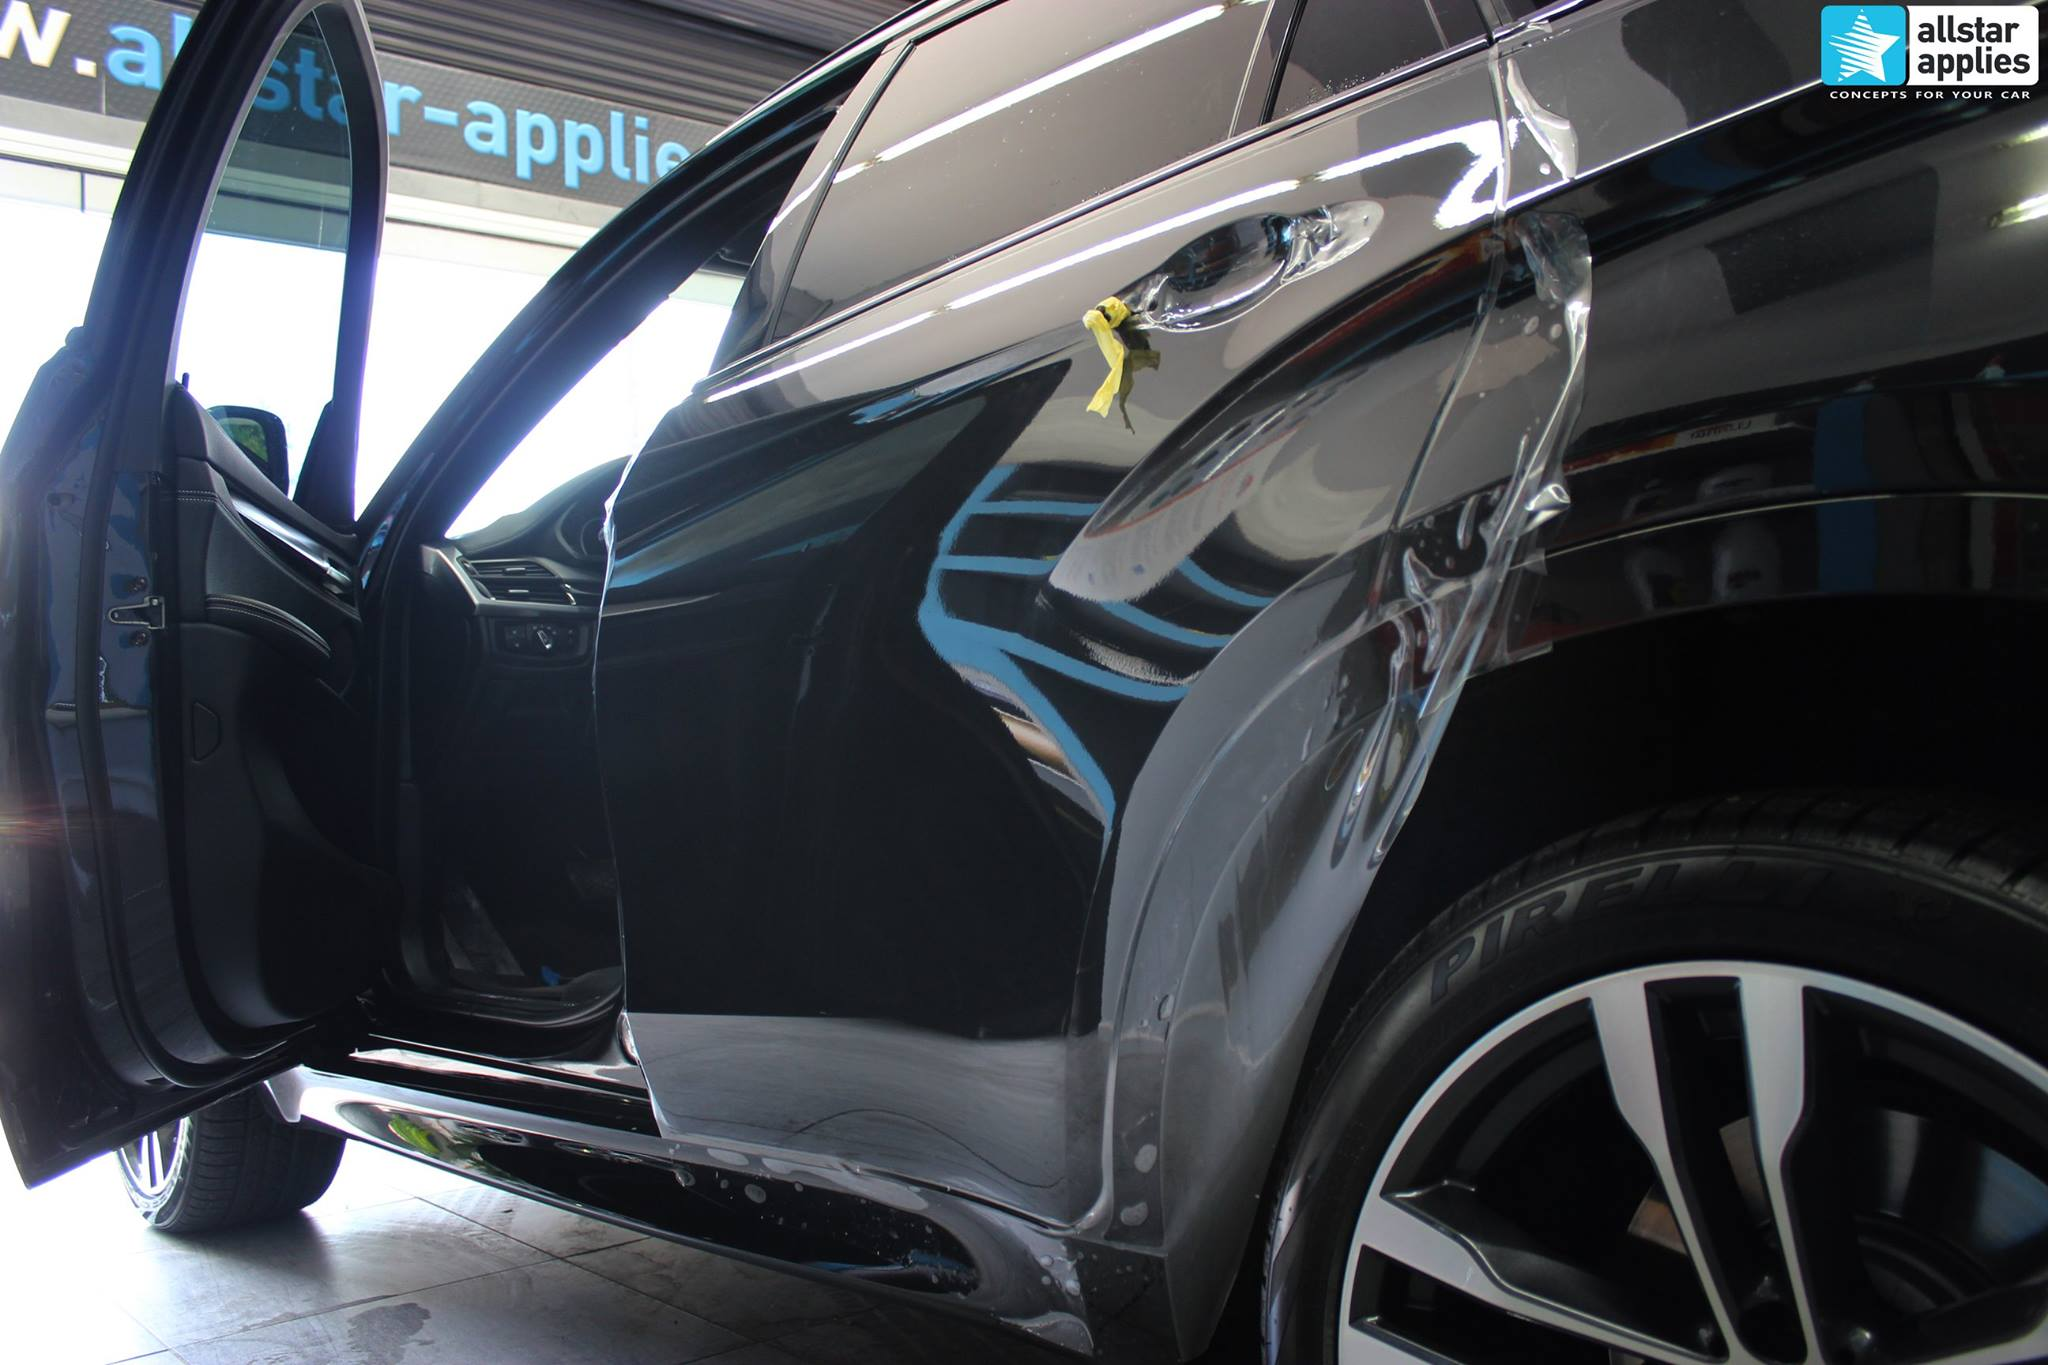 BMW X6 Μ50 - Full Paint Protection Film (7)